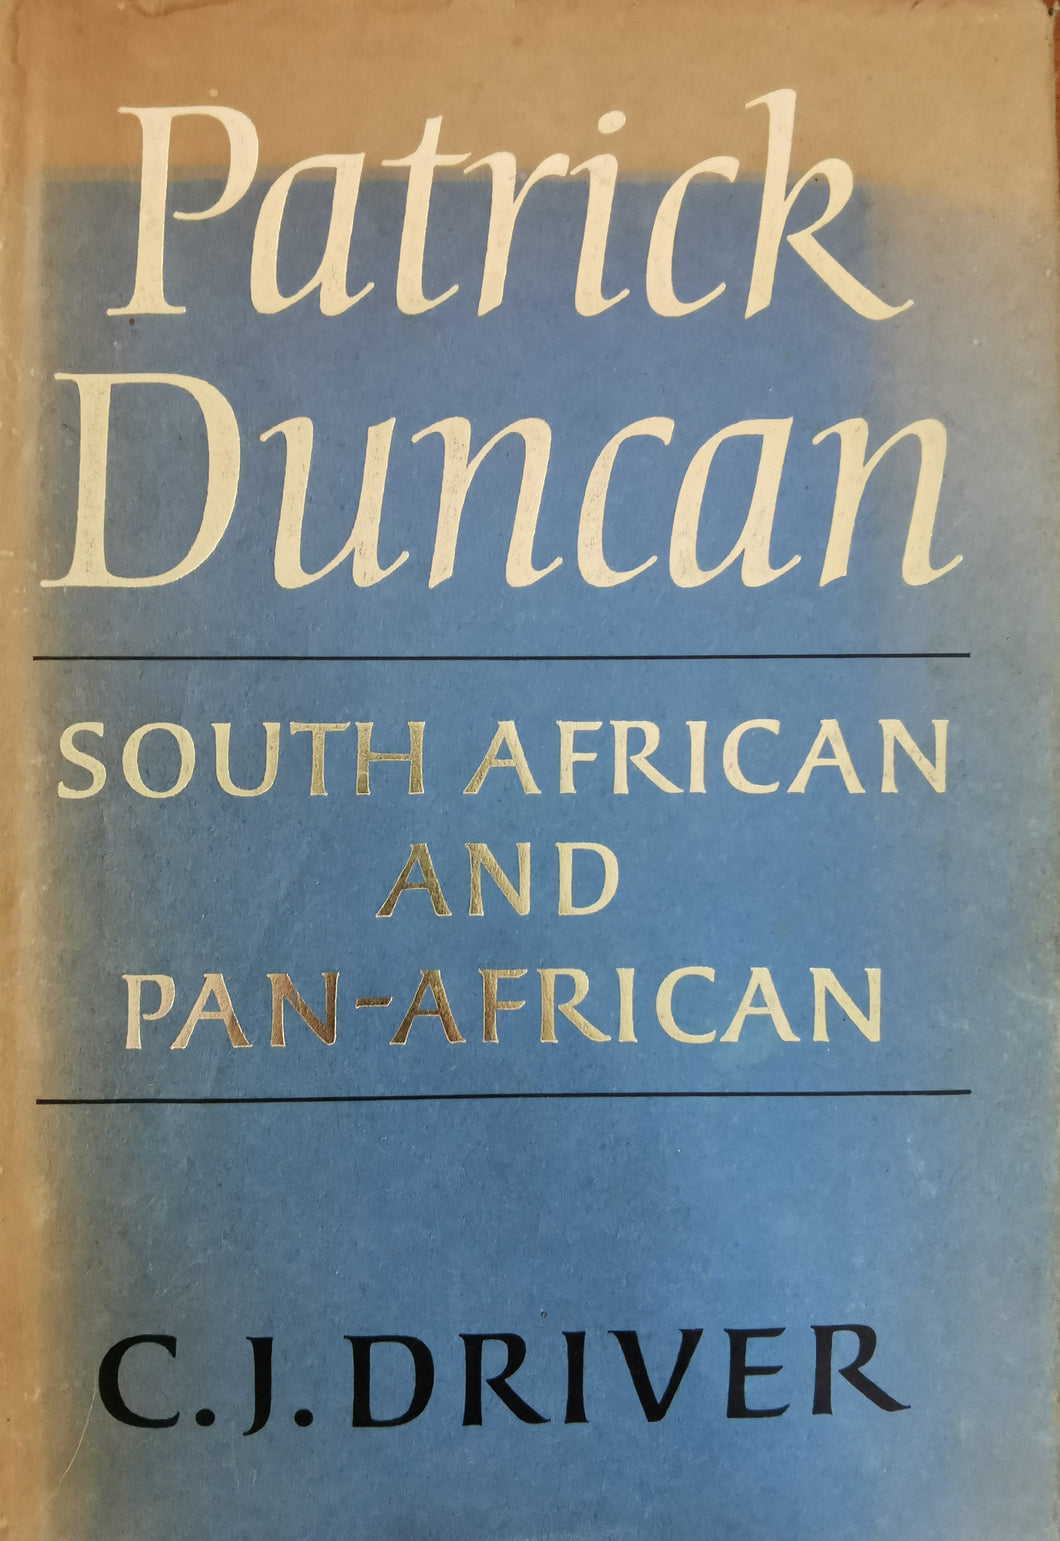 Patrick Duncan: South African and Pan-African - C.J. Driver